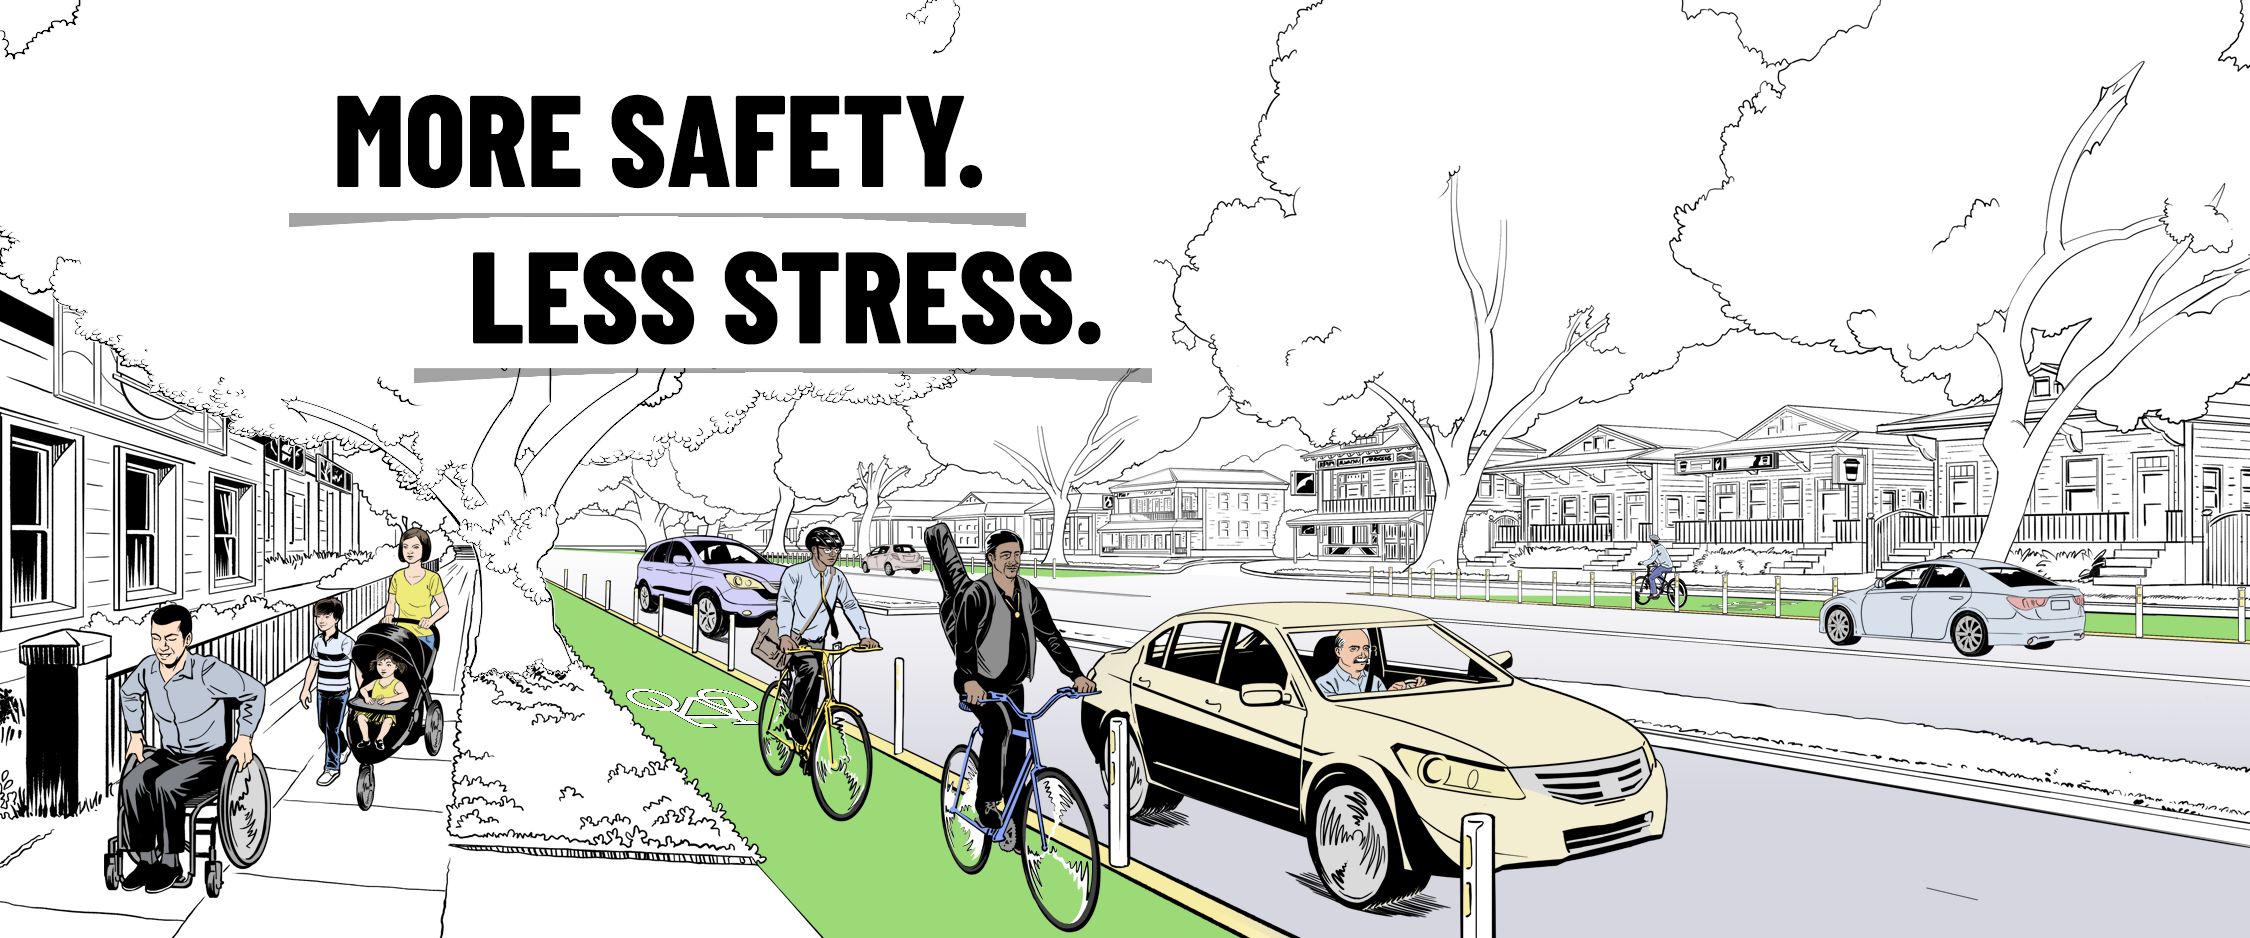 More Safety. Less Stress.